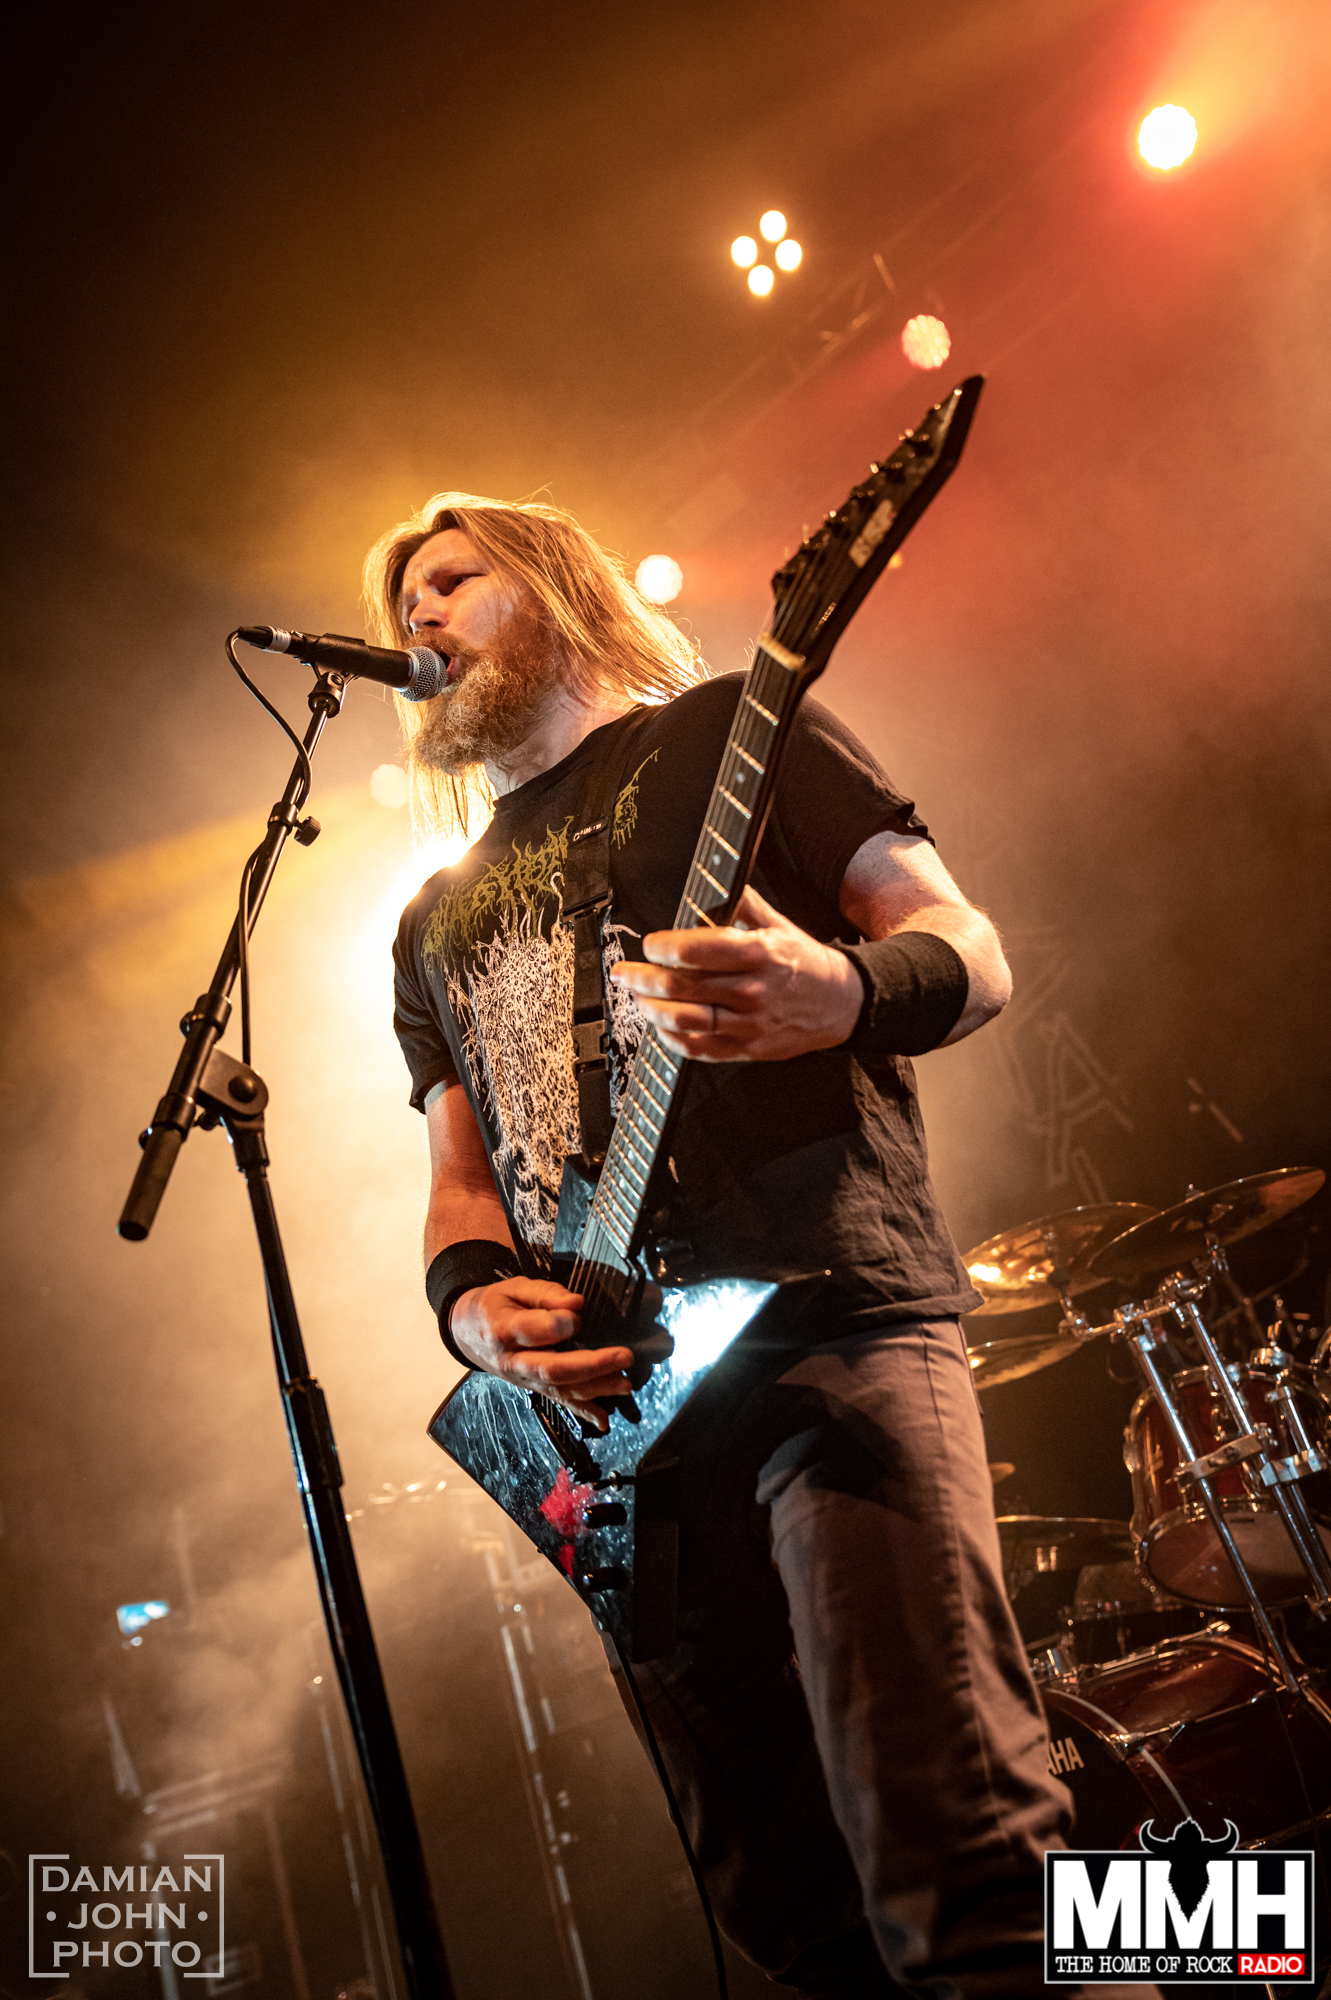 american death metal band misery index performing at the O2 Institute birmingham